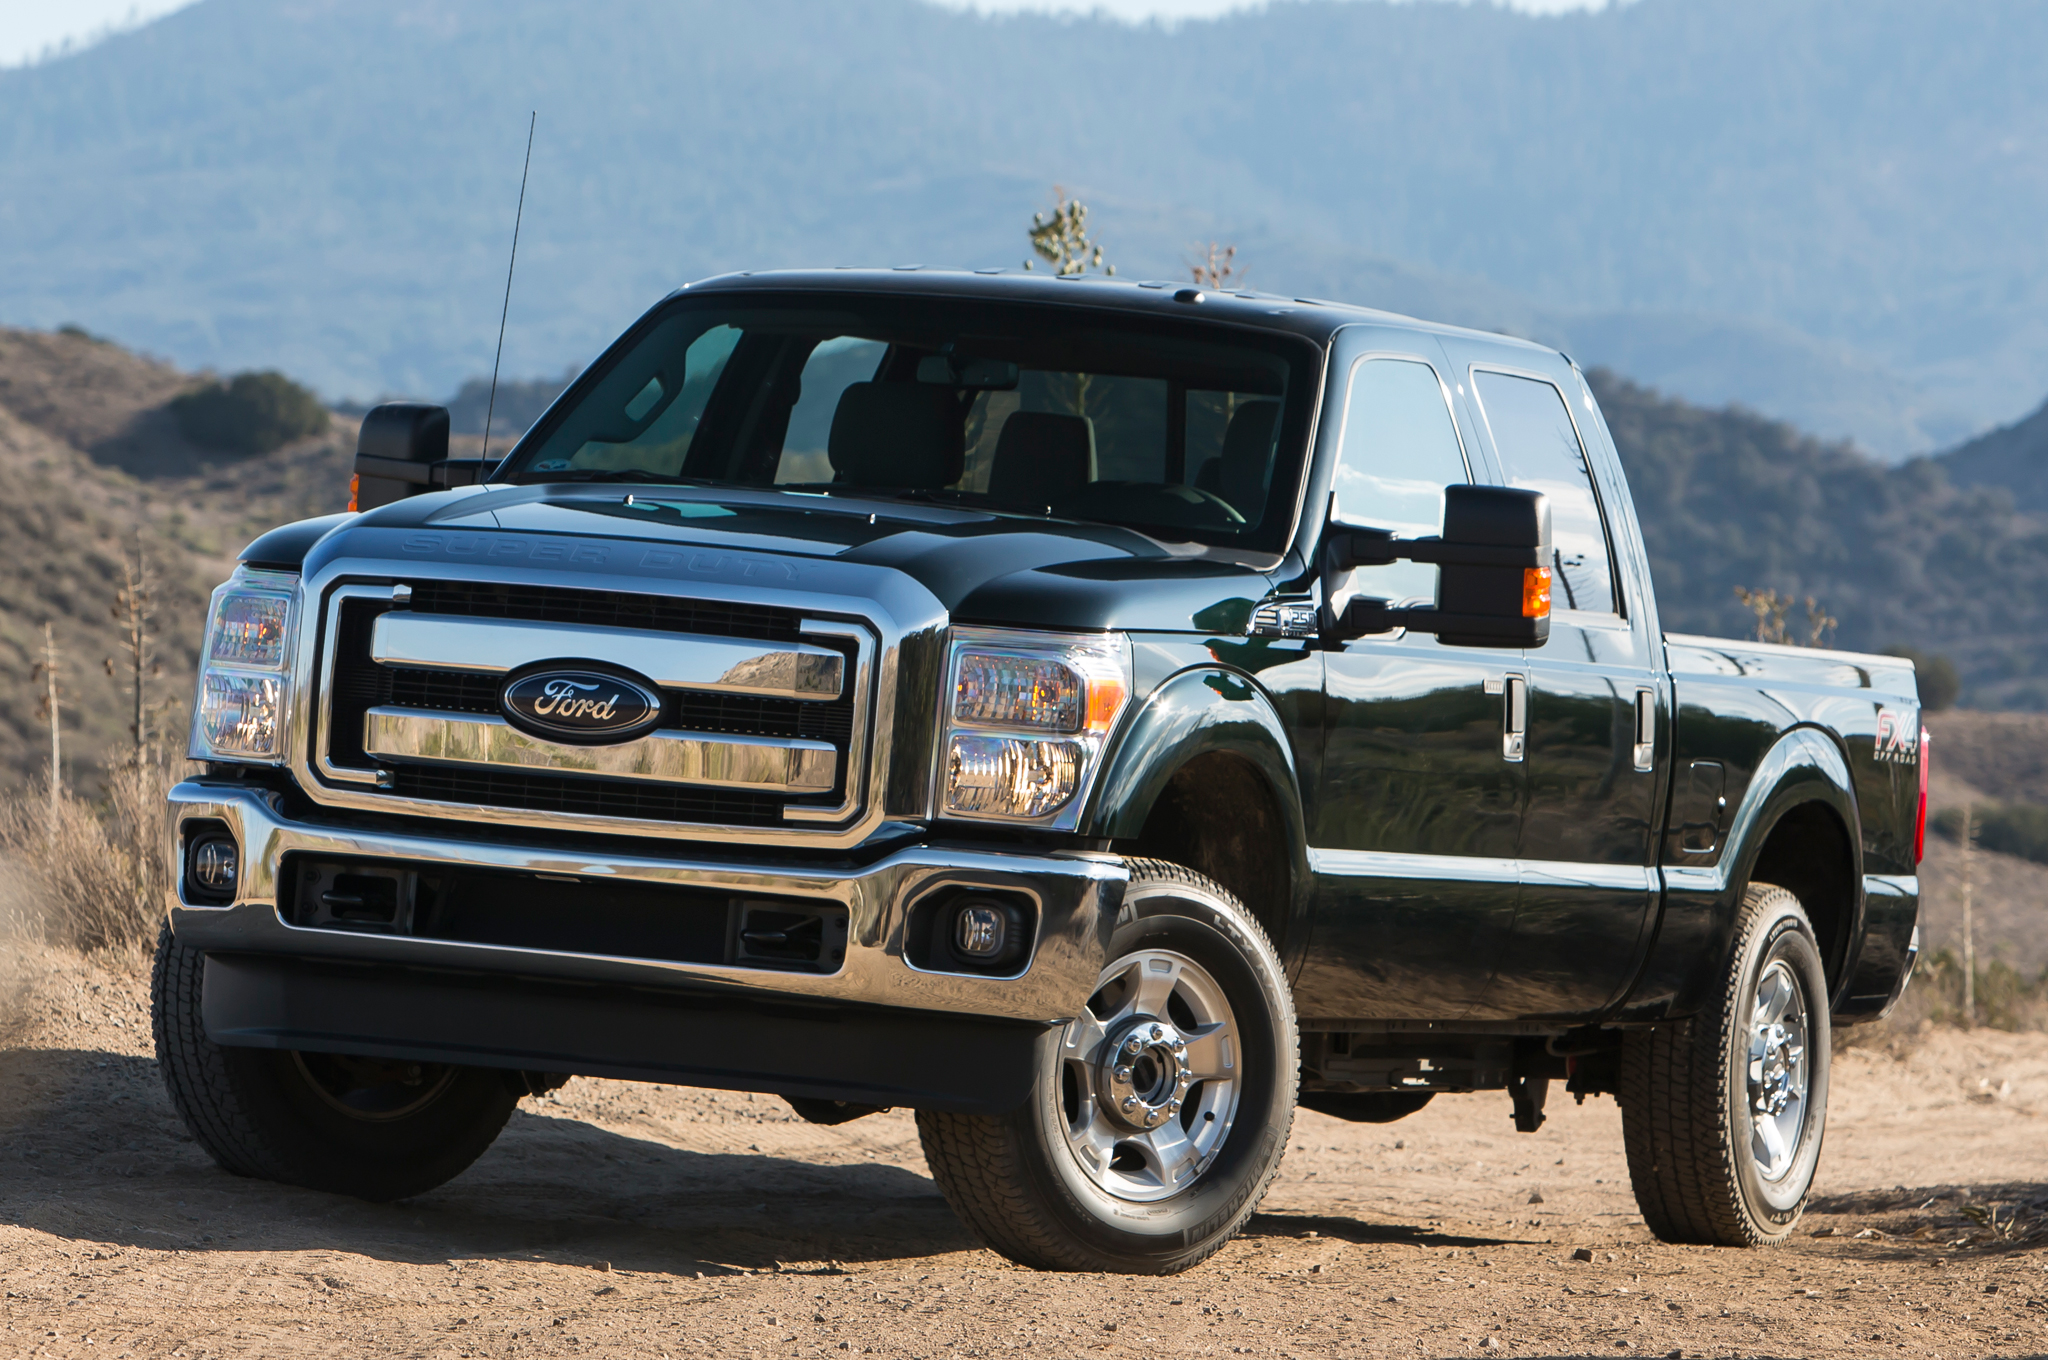 Download ford f250 super duty 2014 7 jpg